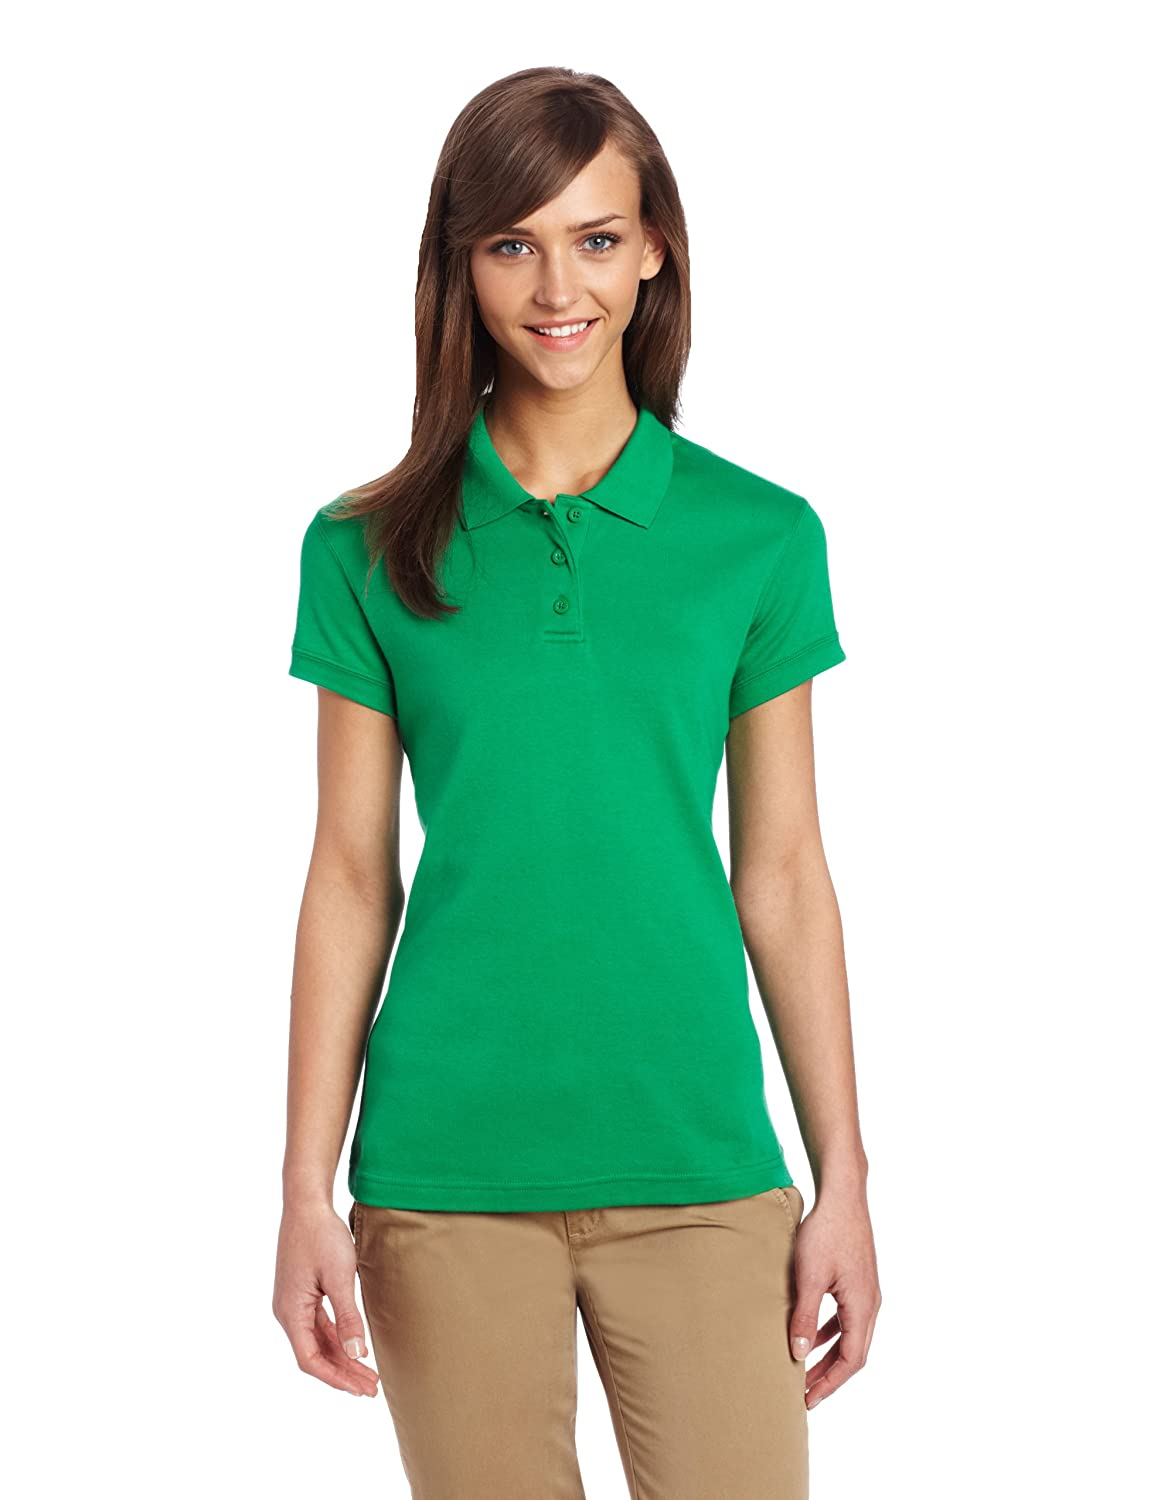 CLASSROOM Juniors' Short-Sleeve Fitted Polo Shirt Classroom Uniforms Classroom Juniors Uniforms 58584-P